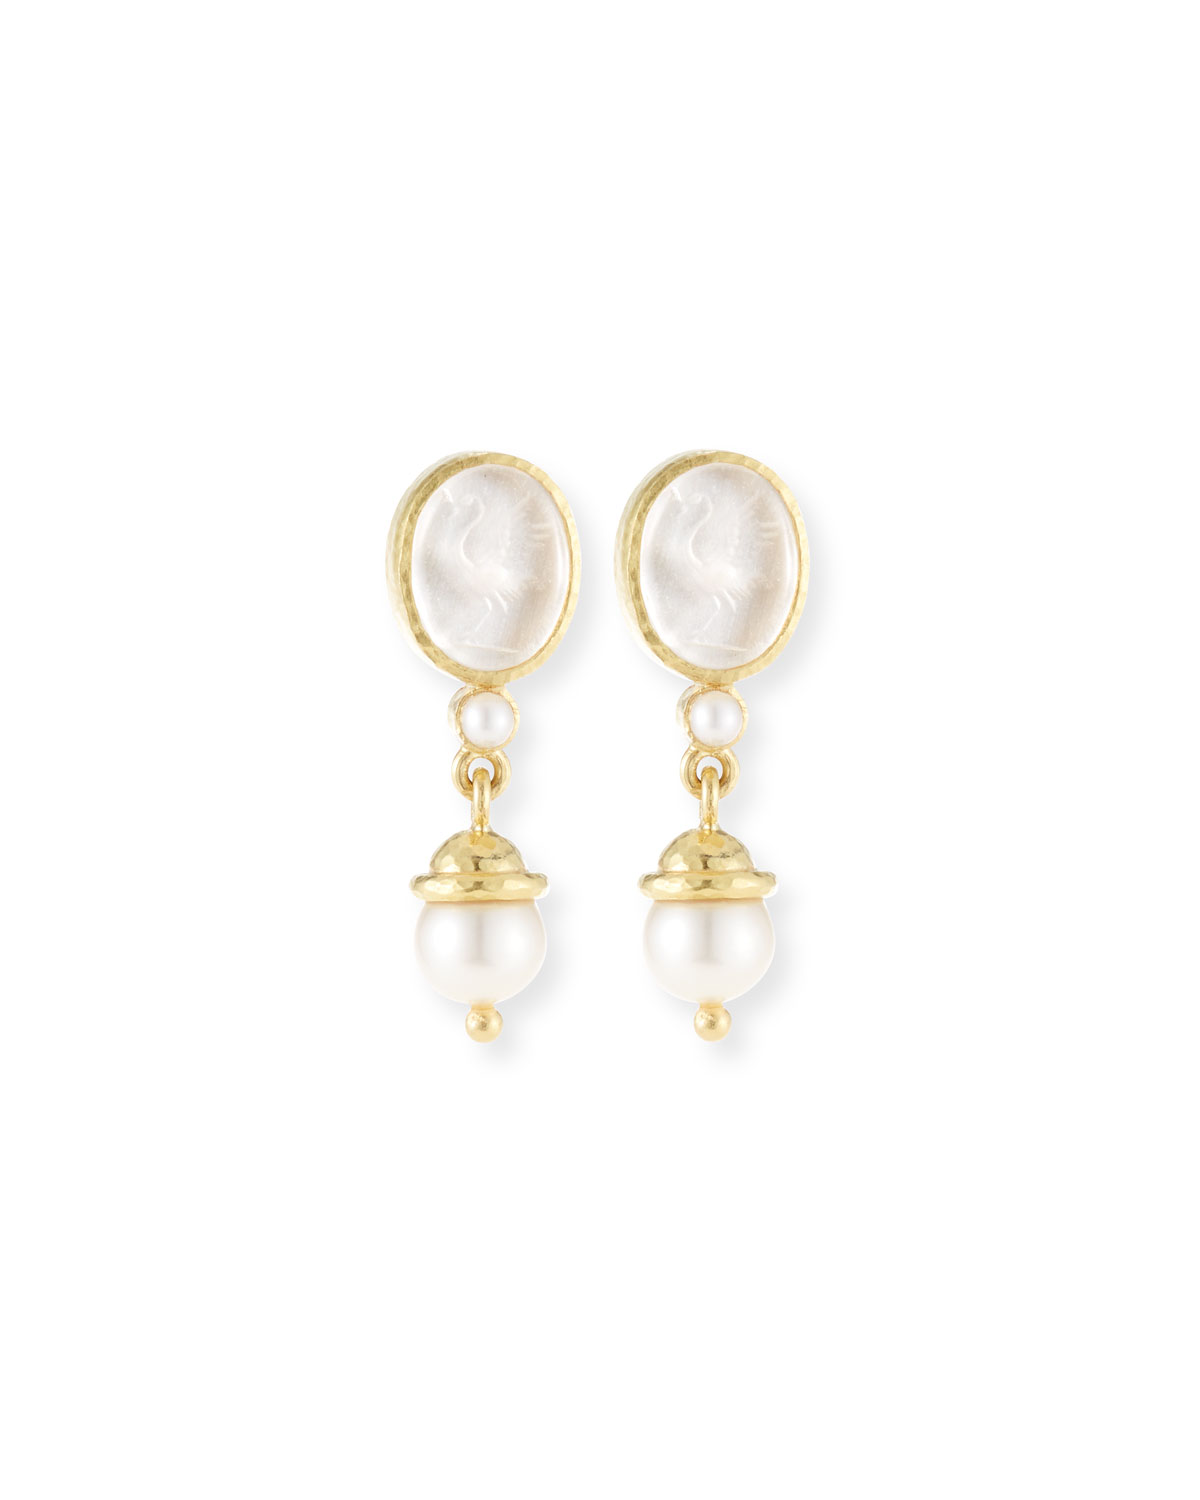 19K Gold Crane Intaglio & Akoya Pearl Drop Earrings